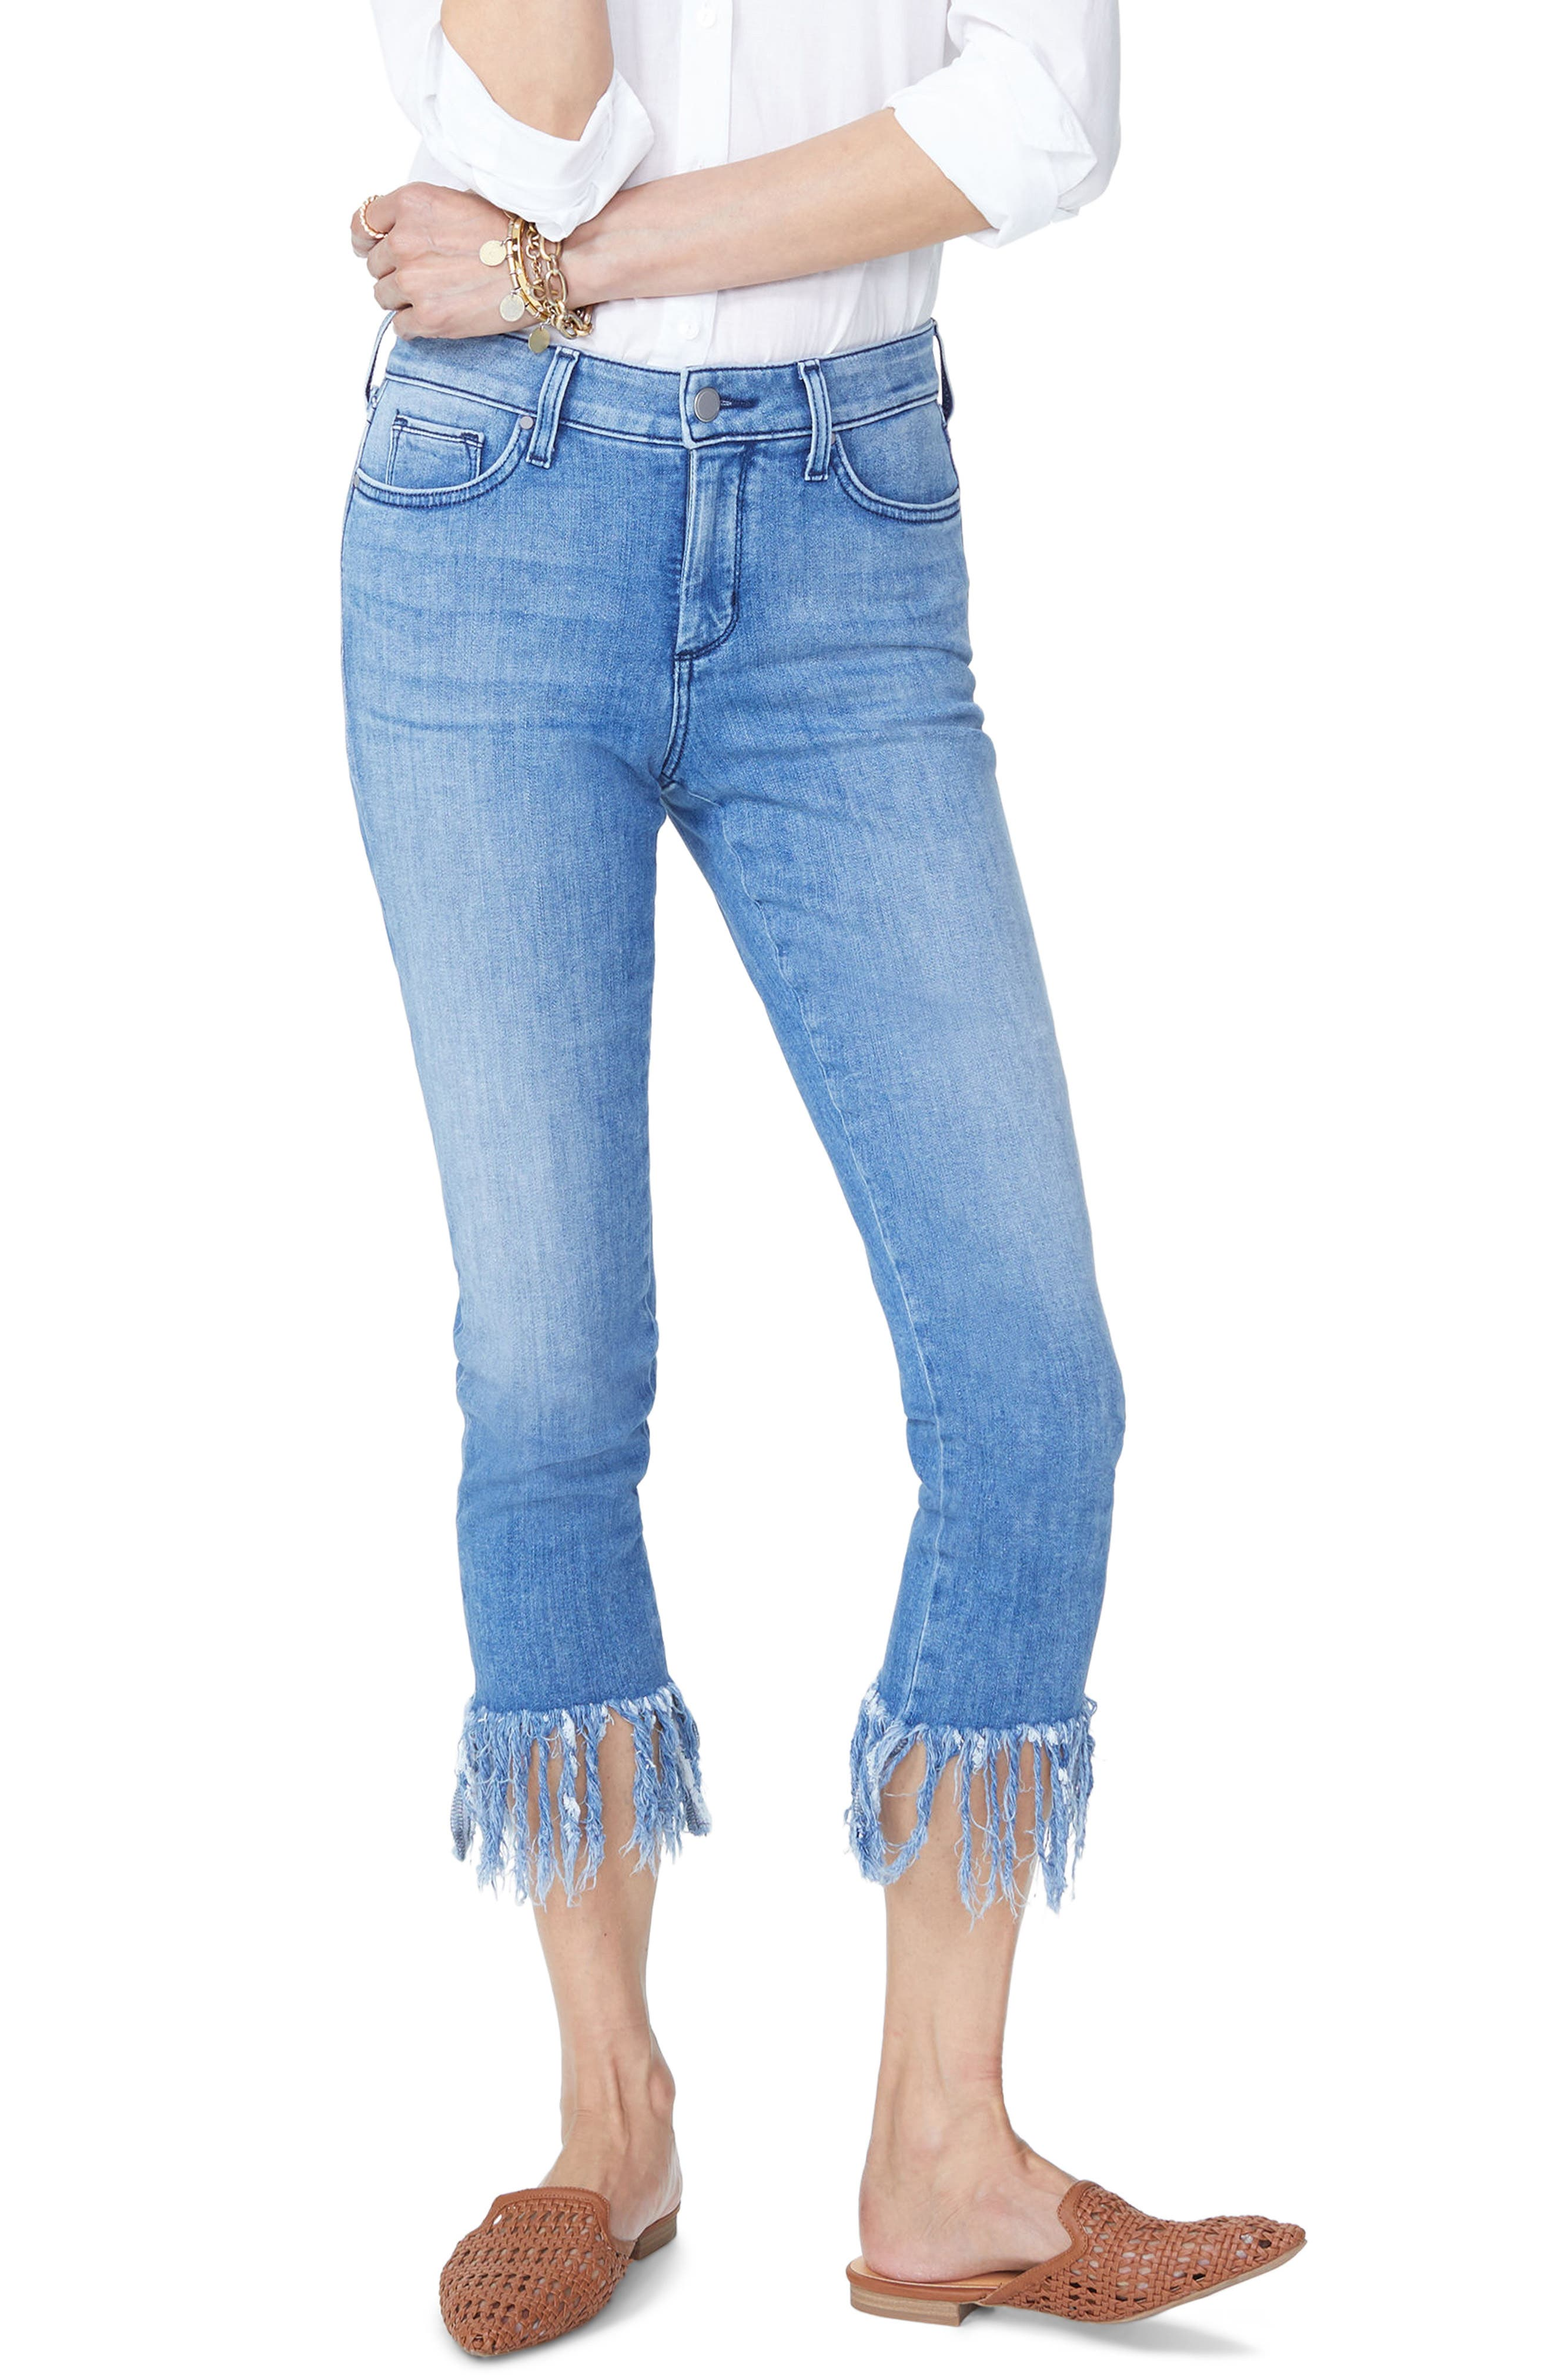 Ami High Waist Long Fray Skinny Stretch Ankle Jeans,                             Main thumbnail 1, color,                             425